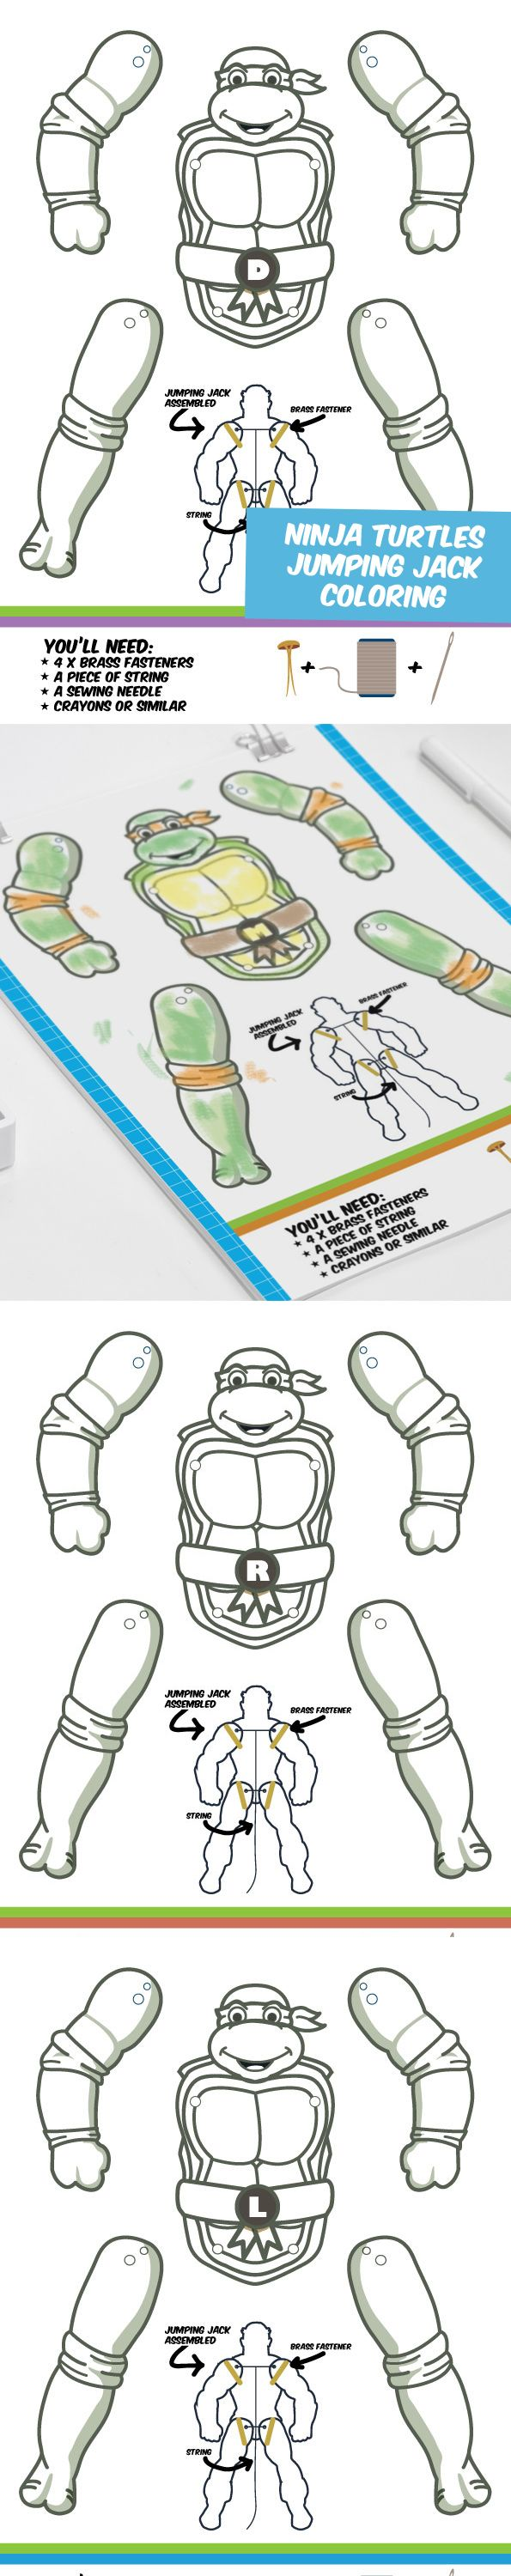 Create your own Ninja Turtles puppets. Color them the way you want them. Great papercrafts for kids!